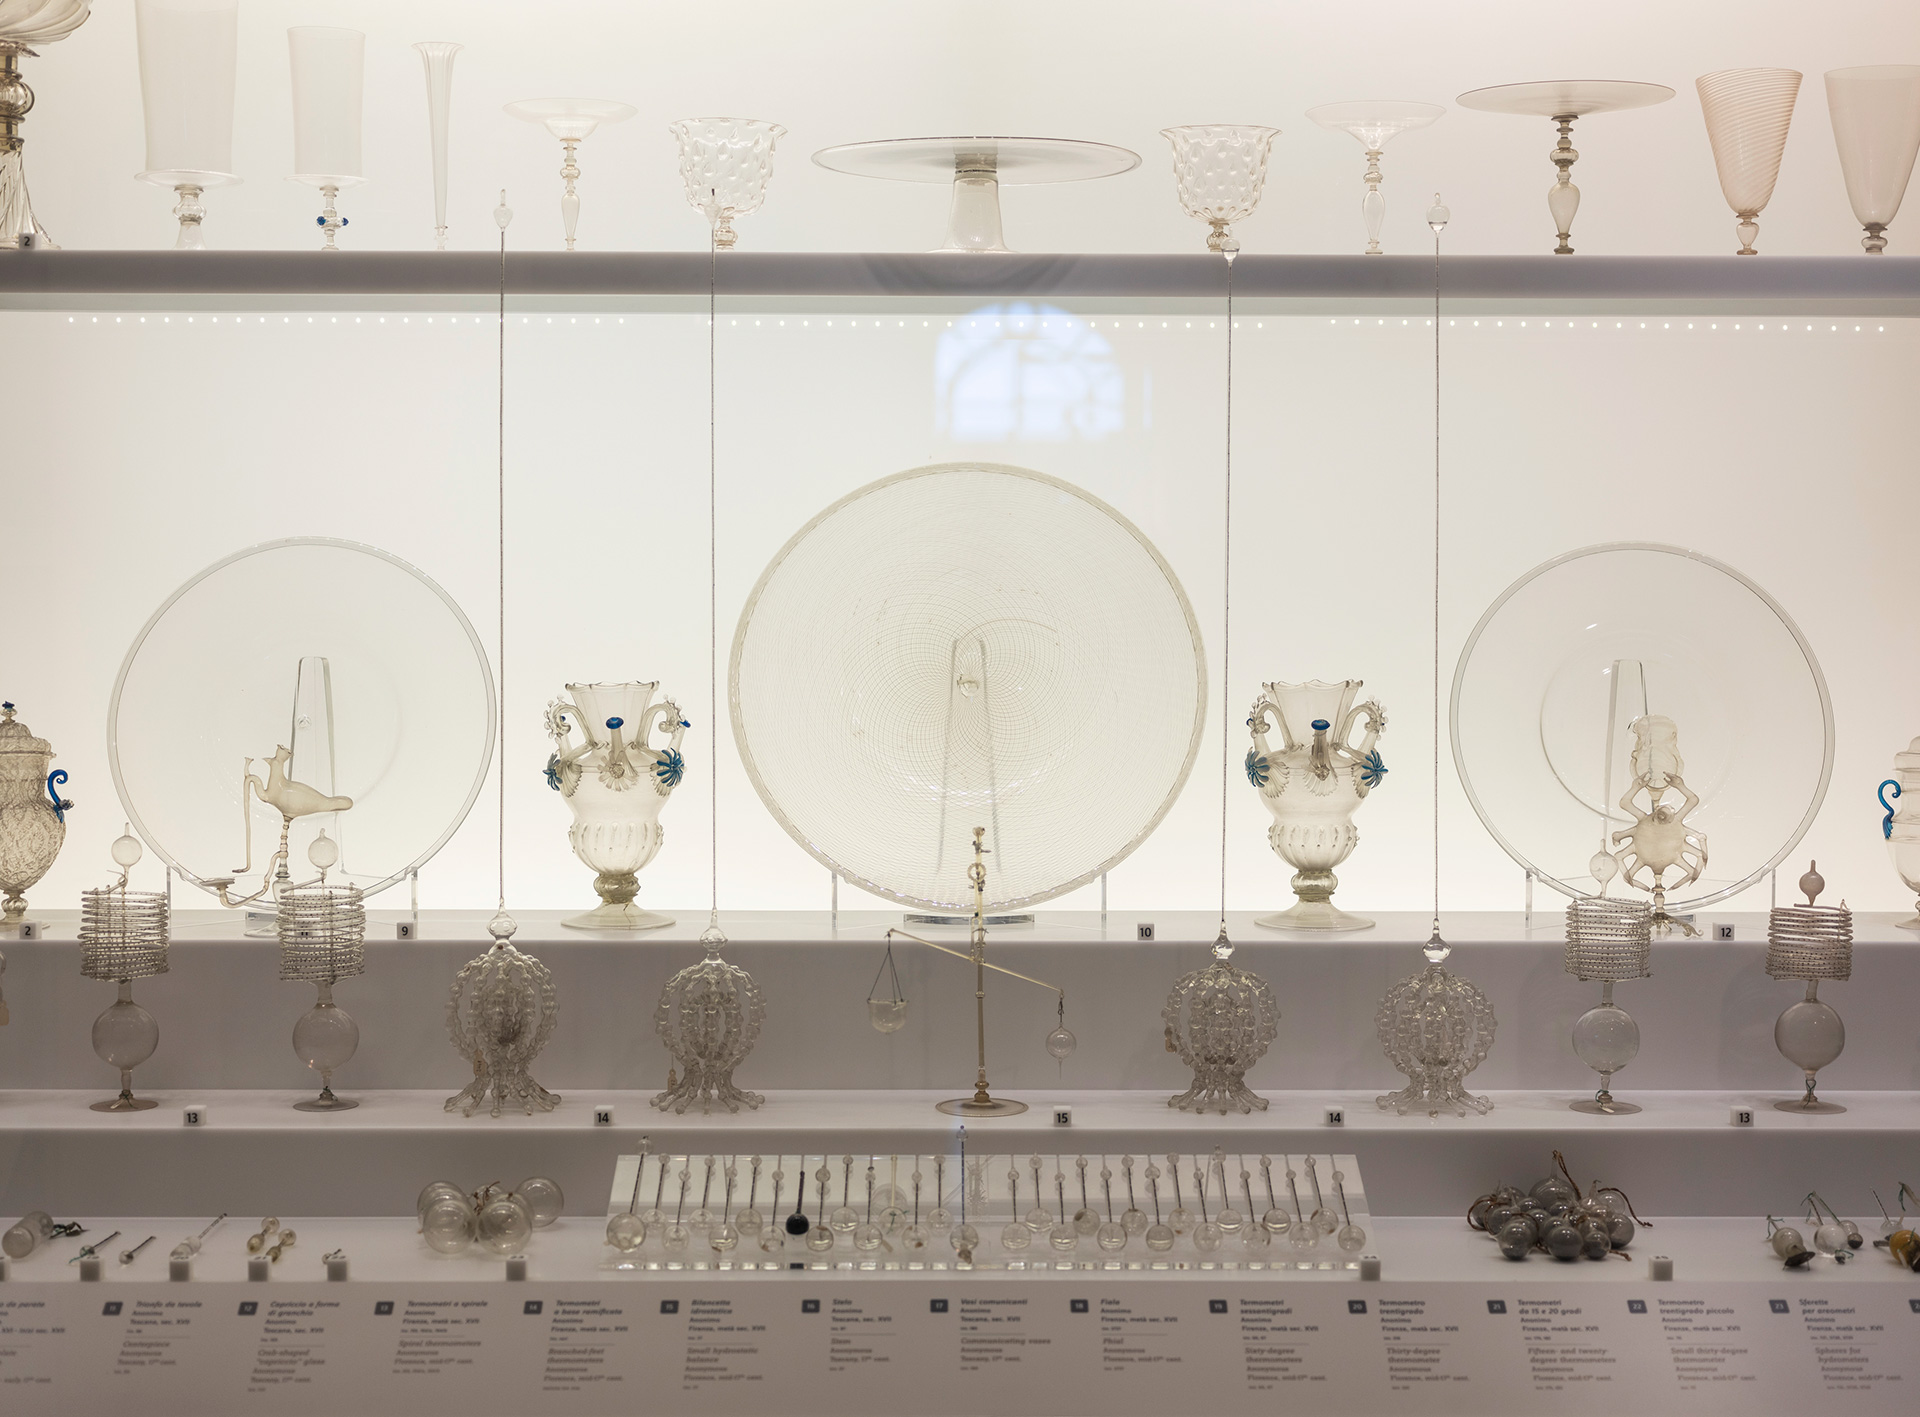 Museo Galileo, showcase with scientific glass instruments and thermometers of the Accademia del Cimento, 17th century, Florence, Italy, 2018 | Blind Sensorium. Il Paradosso dell'Antropocene | Armin Linke | STIRworld